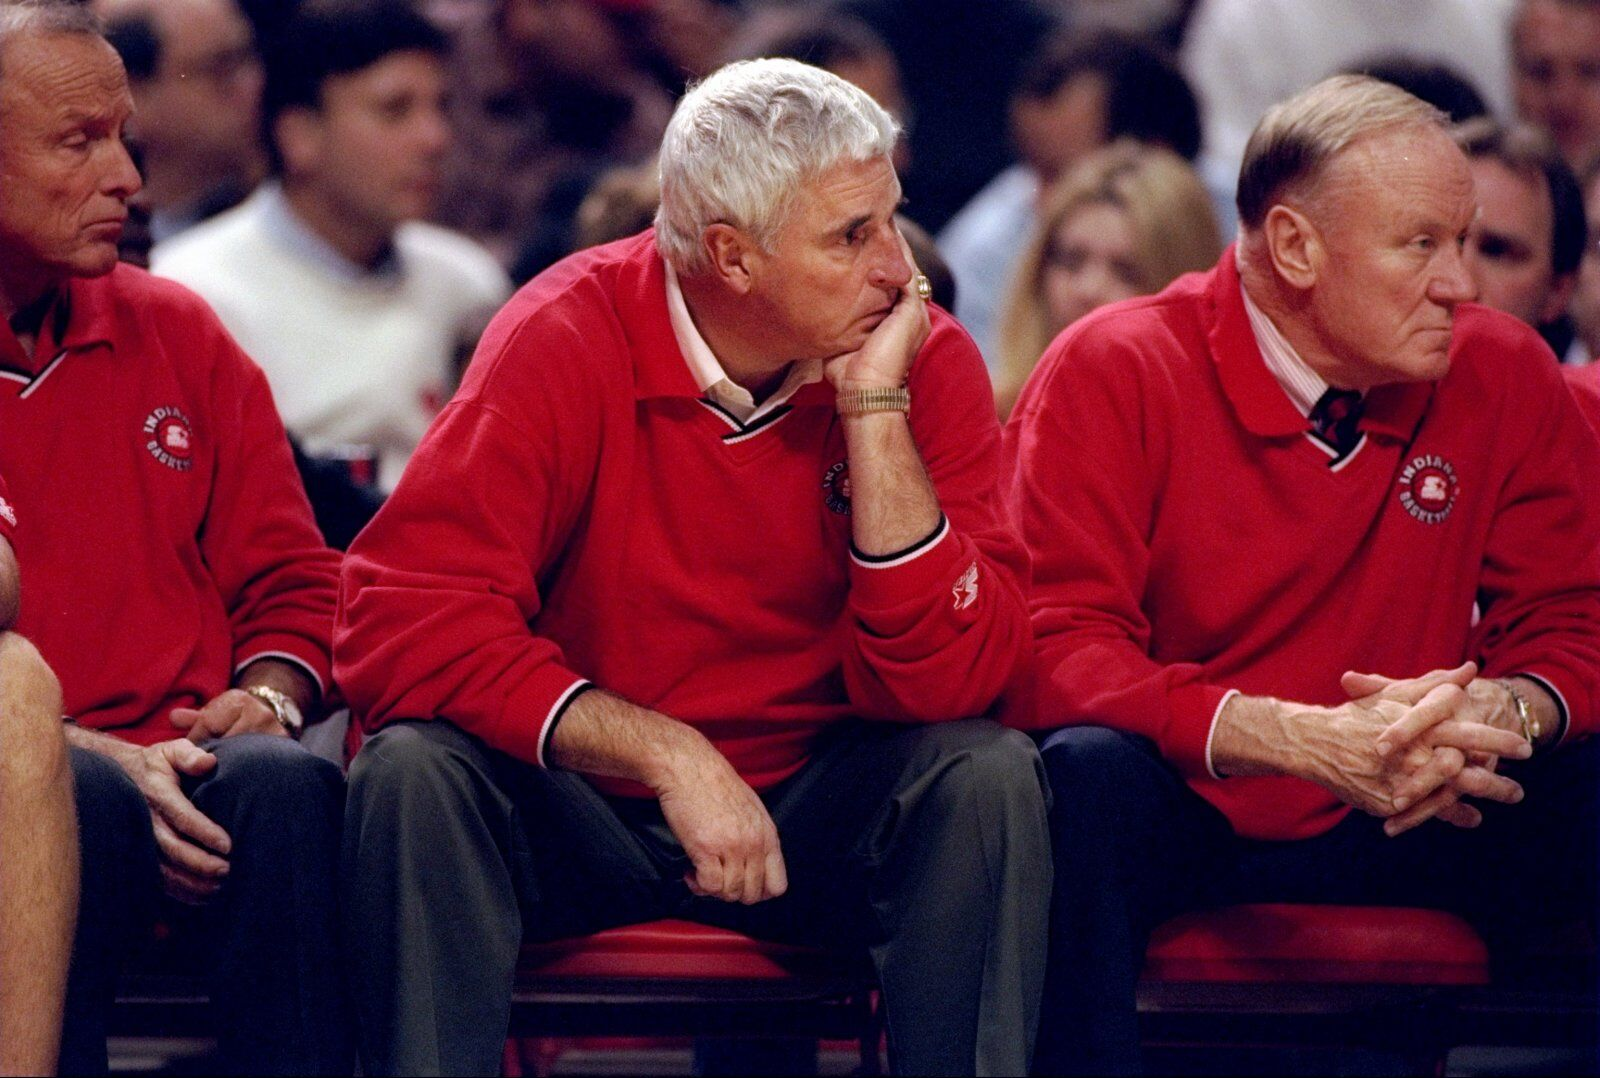 Indiana Basketball: Just how true is the ESPN Bob Knight article?